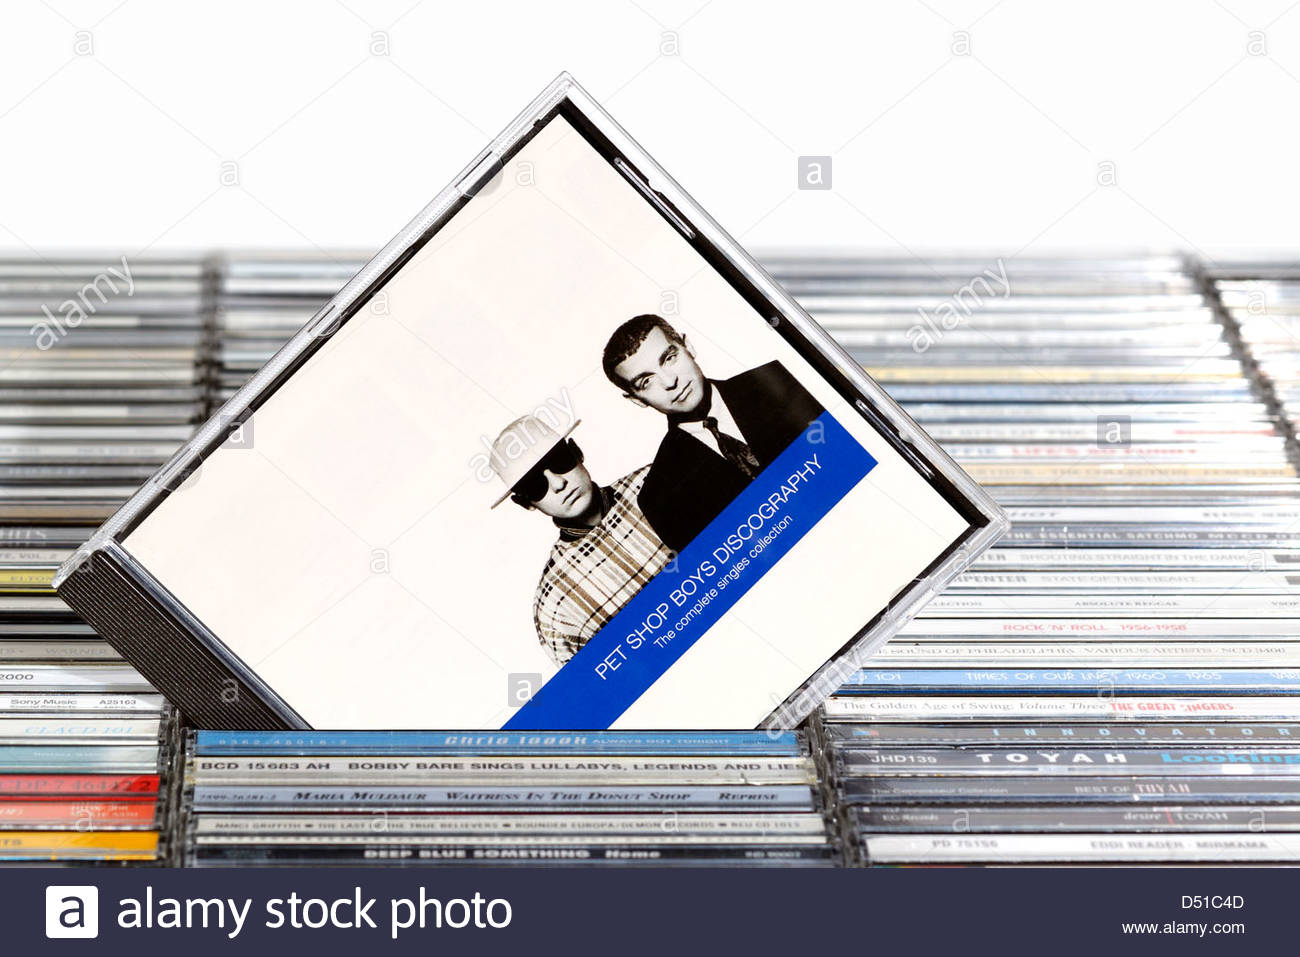 Pet Shop Boys album Discography, piled music CD cases, England. - Stock Image